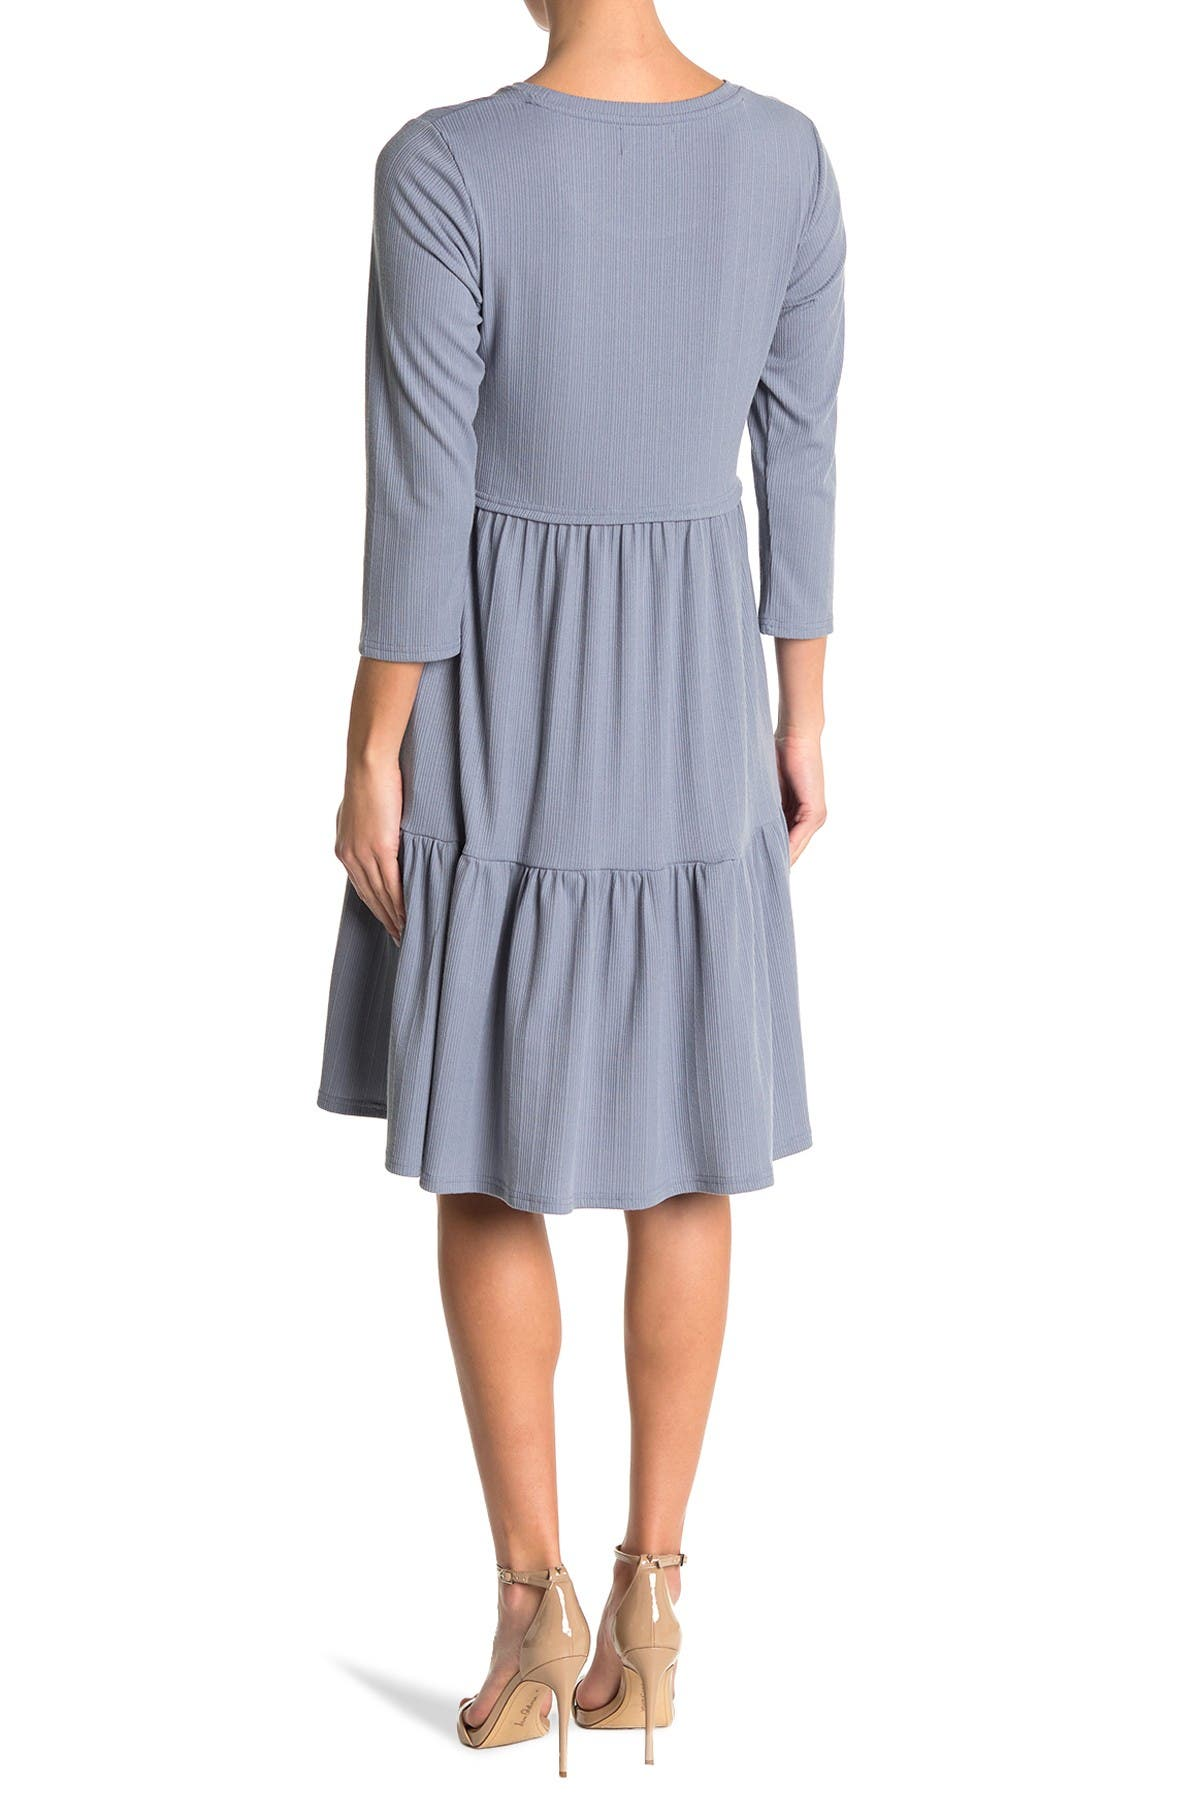 Image of MELLODAY 3/4 Sleeve Tiered Dress w/ Pockets